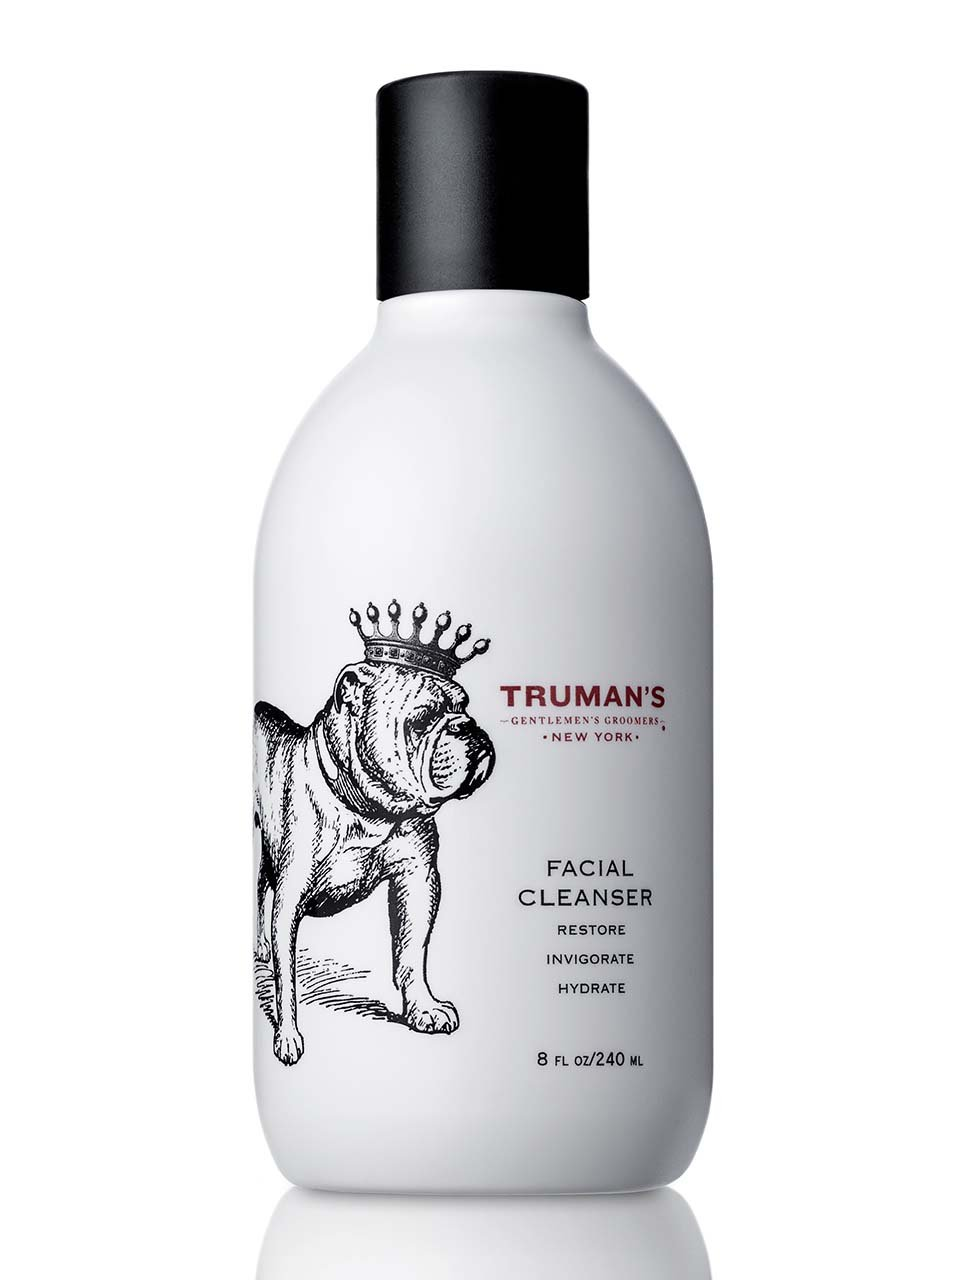 Truman's Facial Cleanser